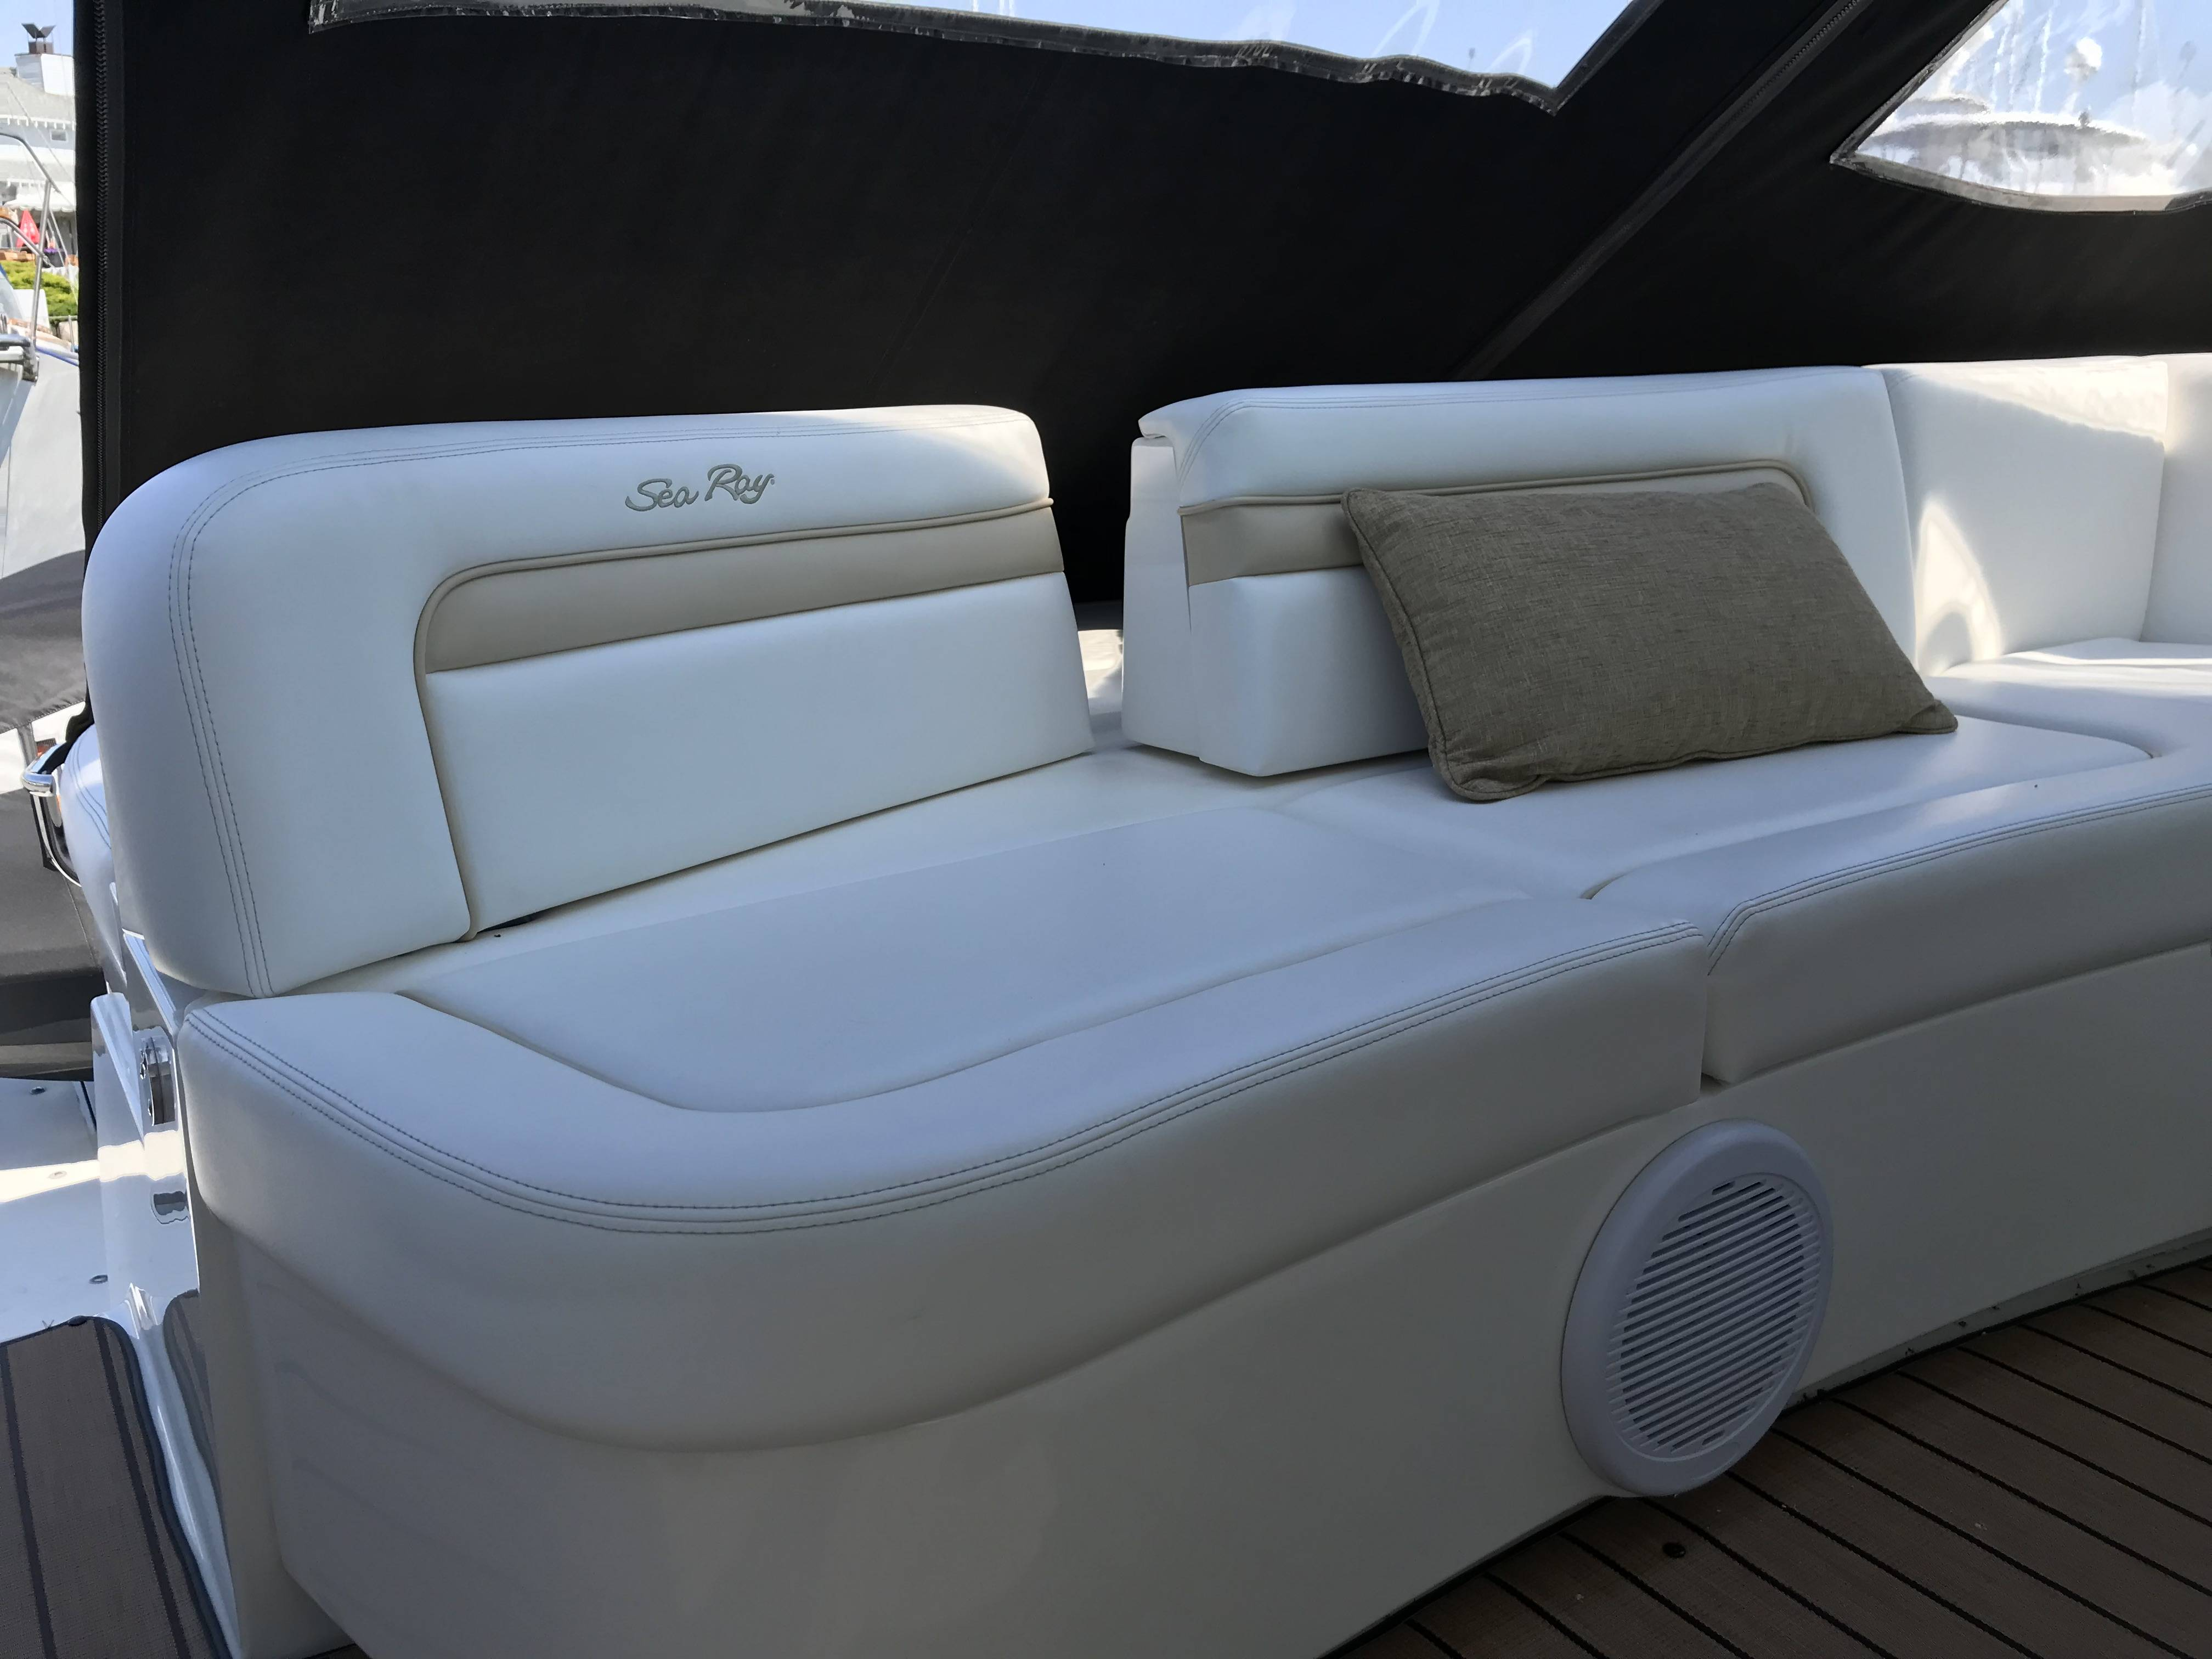 2010 Sea Ray boat for sale, model of the boat is 540 SUNDANCER & Image # 15 of 28